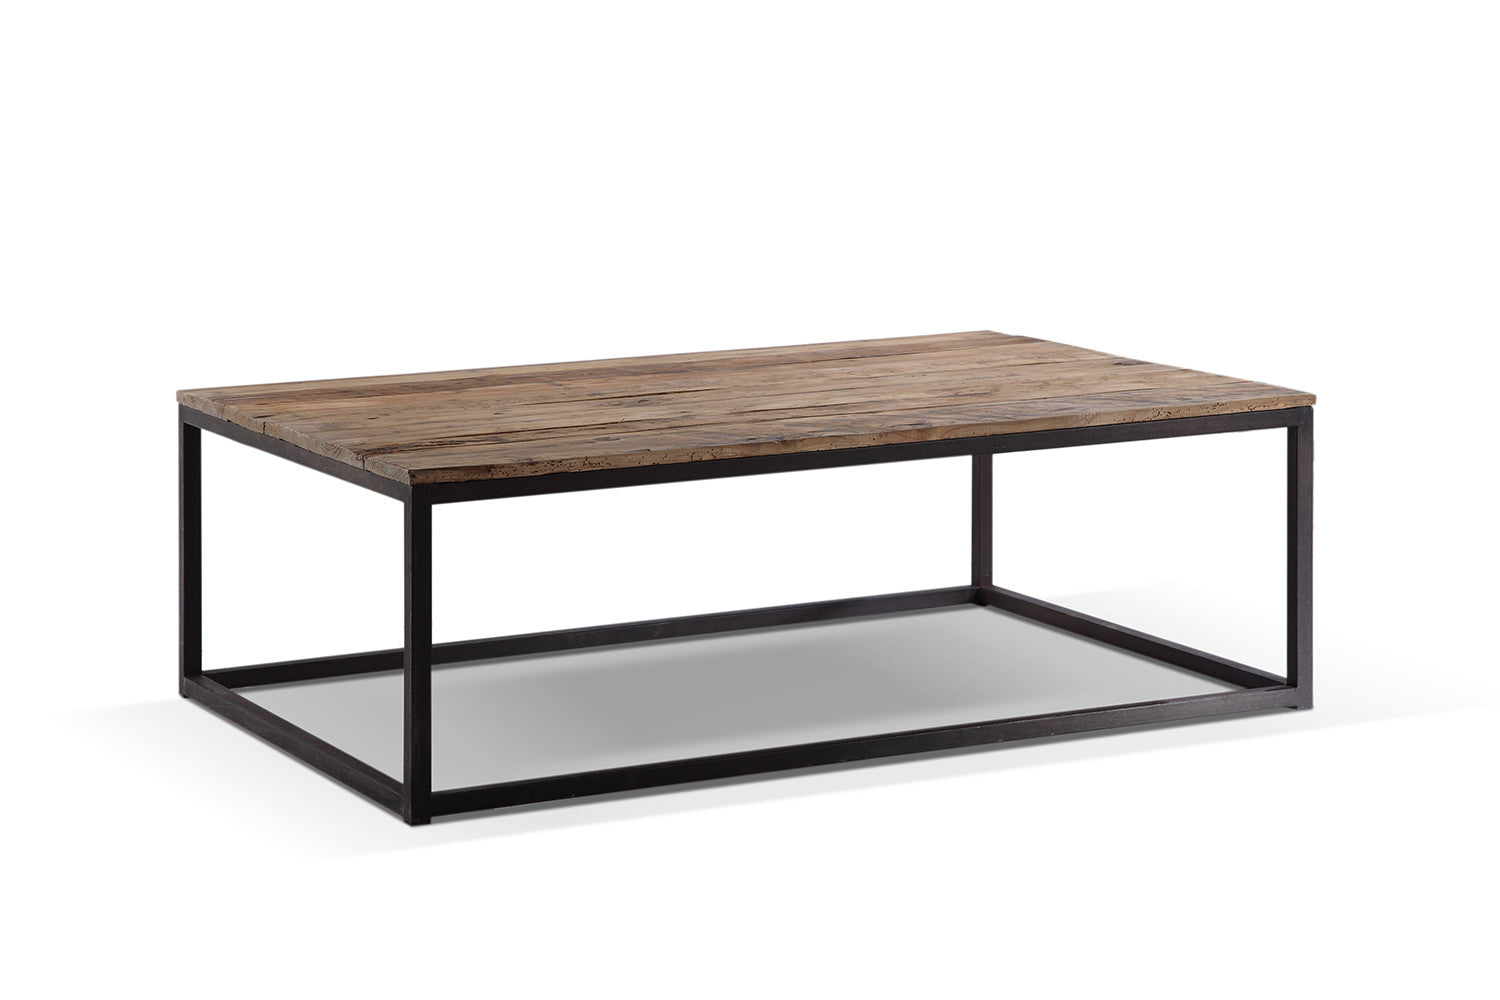 Table basse industrielle en m tal et bois rose moore for Table basse industrielle metal et bois